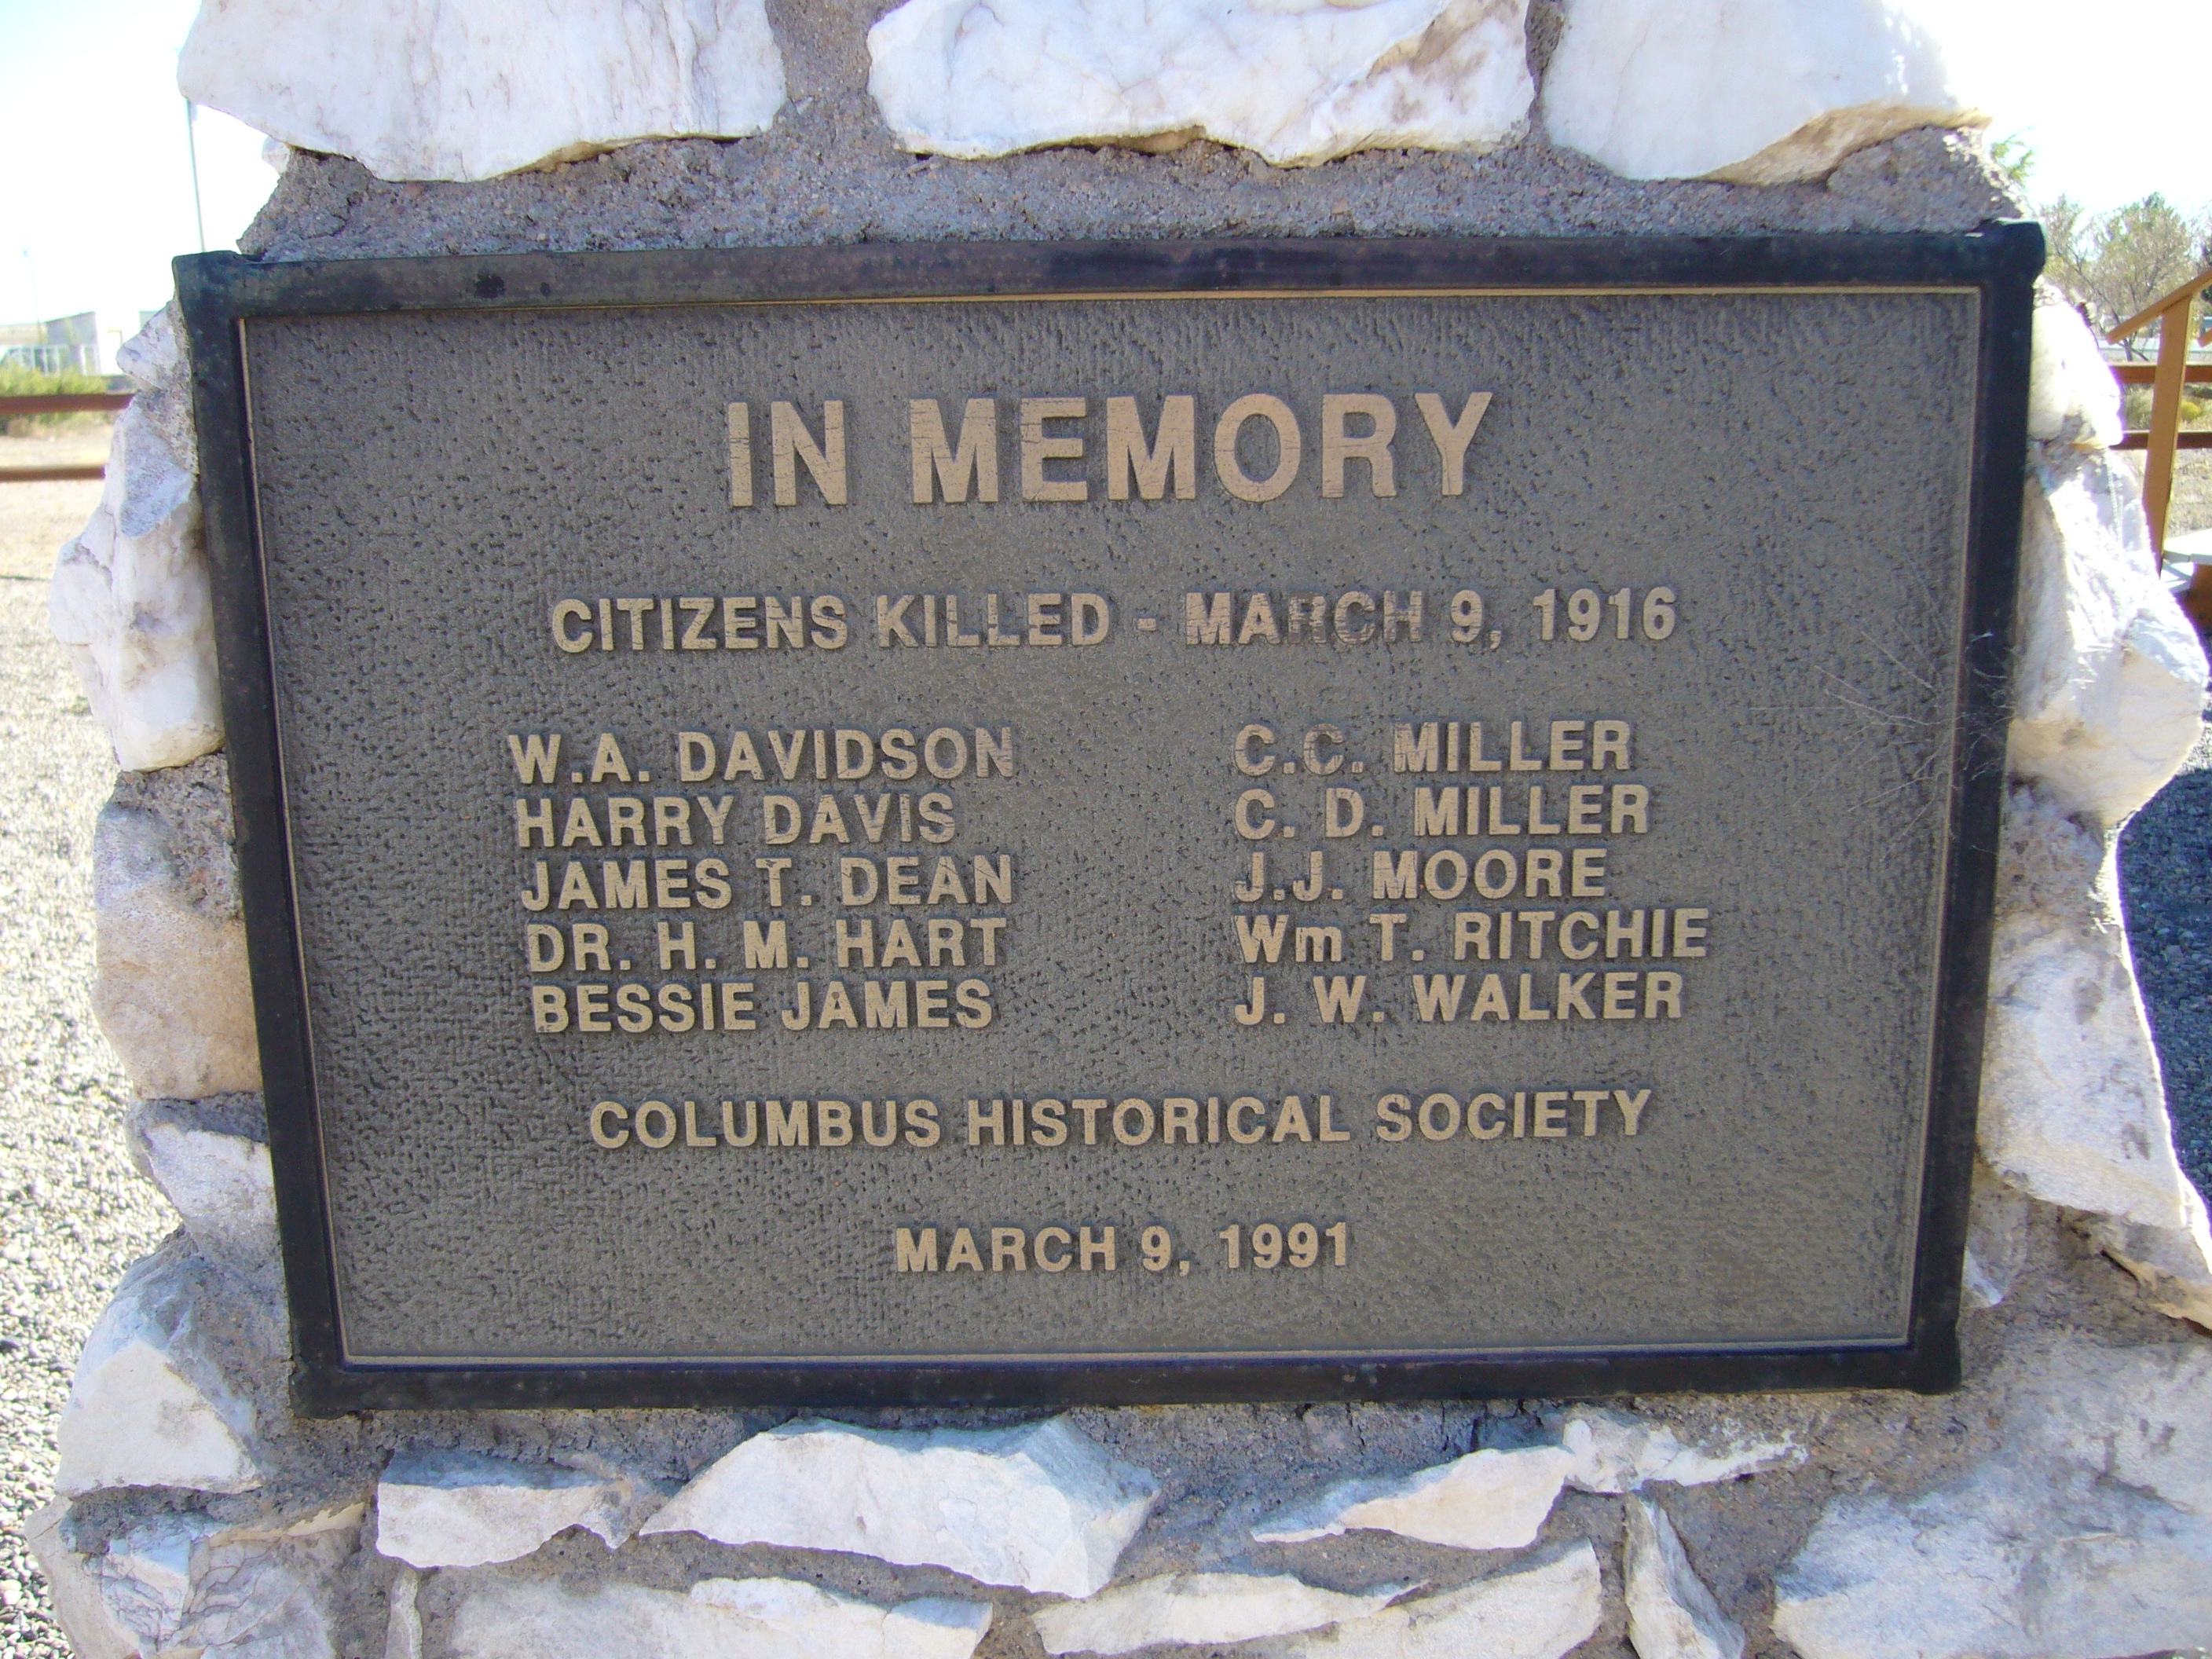 In Memory of Citizens Killed Marker - Side A